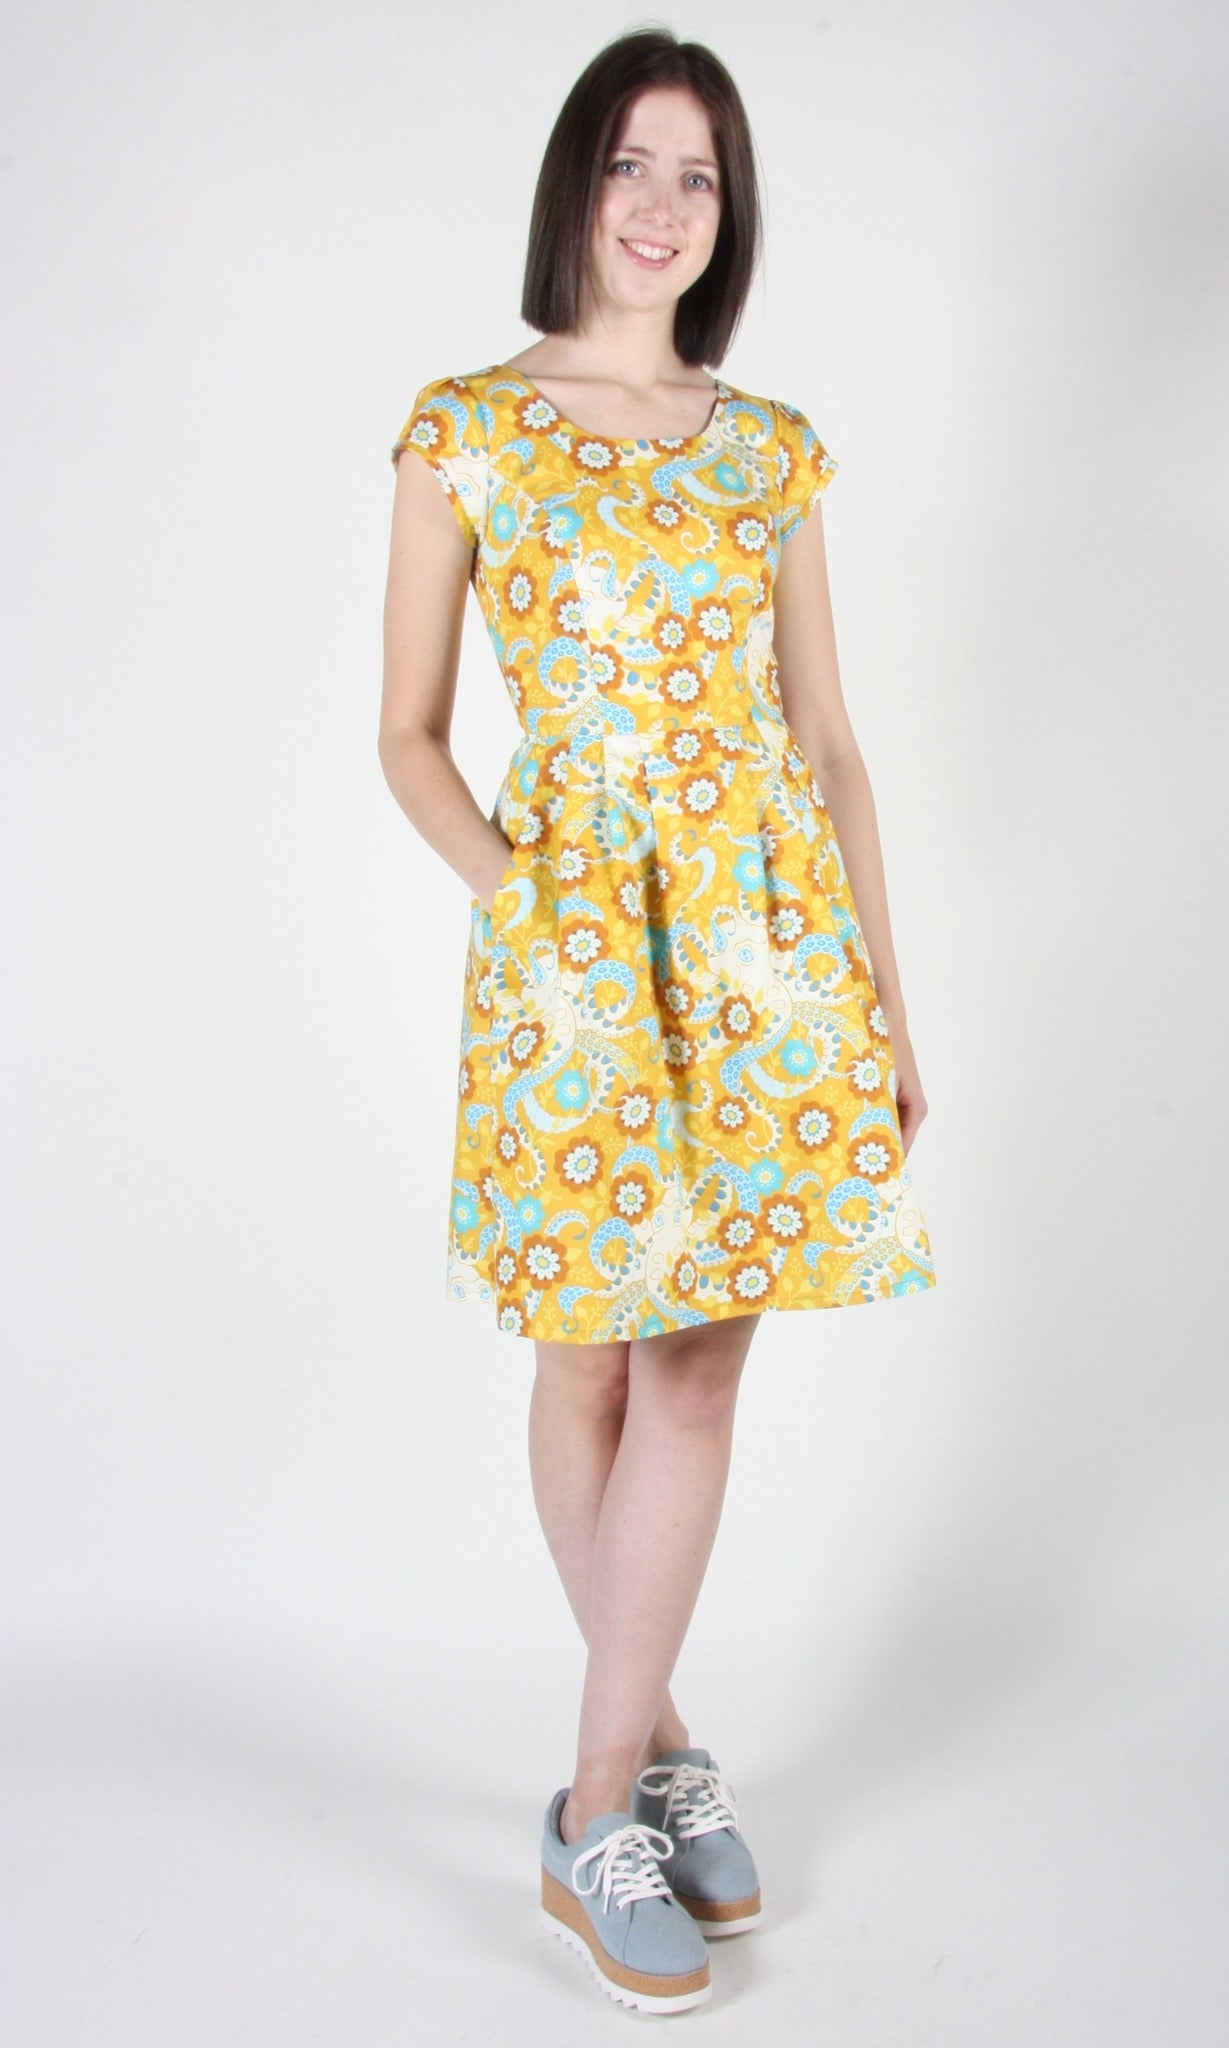 Gallinule Dress - Octopus' Daydream